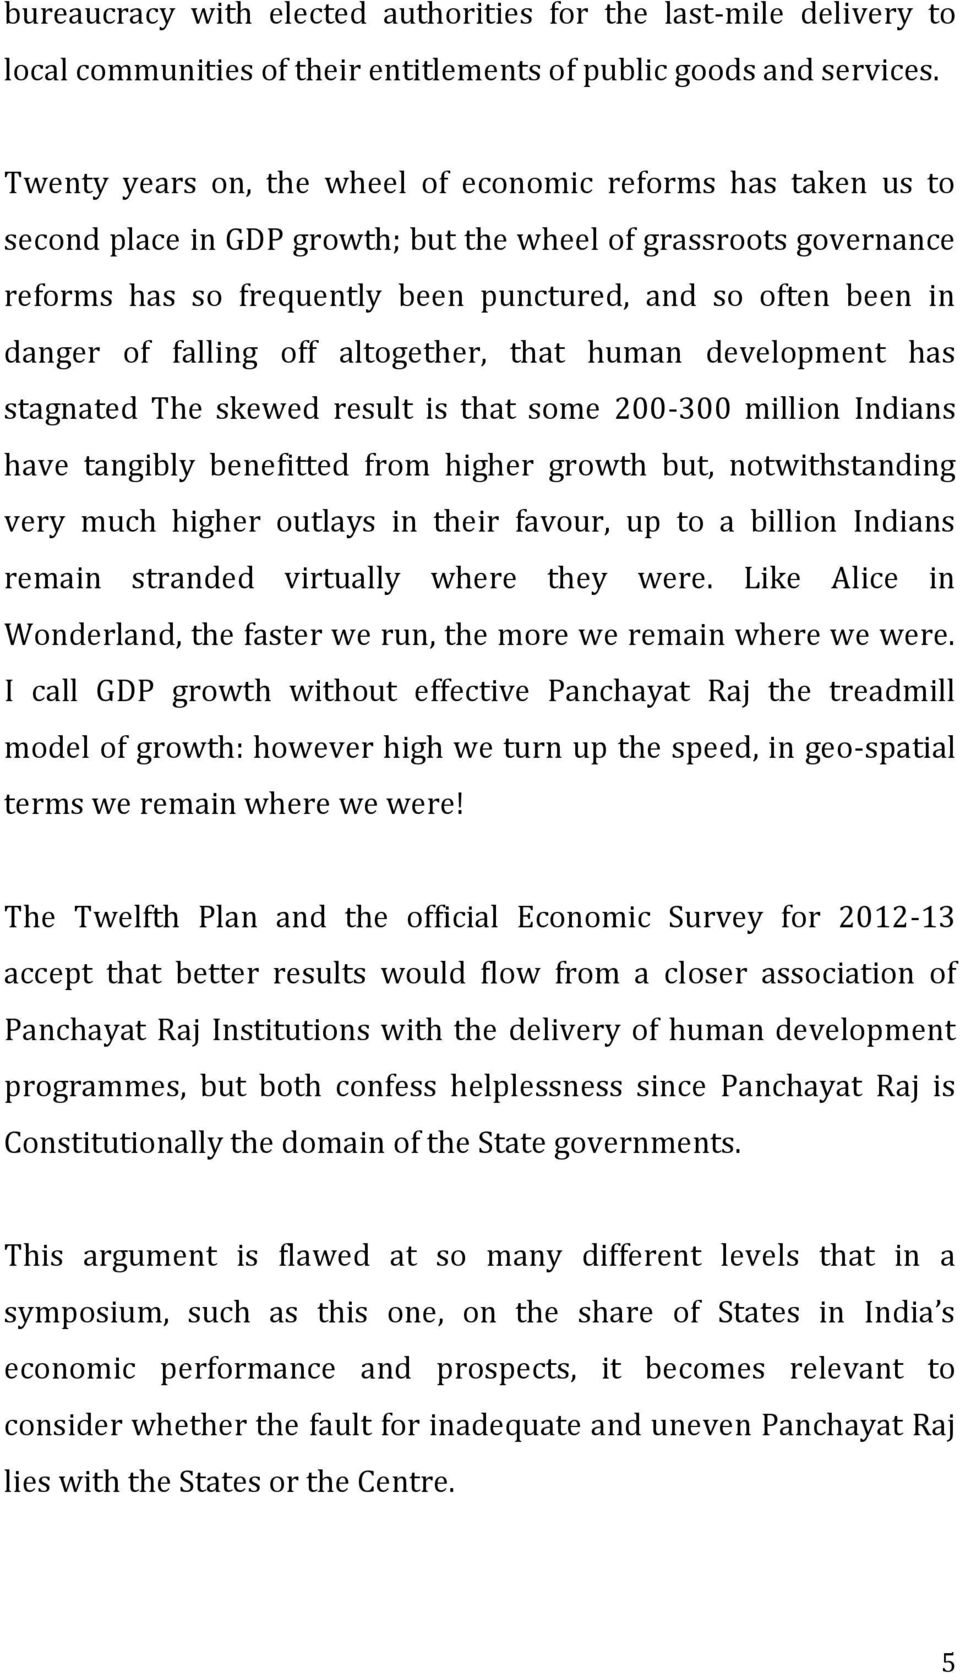 of falling off altogether, that human development has stagnated The skewed result is that some 200-300 million Indians have tangibly benefitted from higher growth but, notwithstanding very much